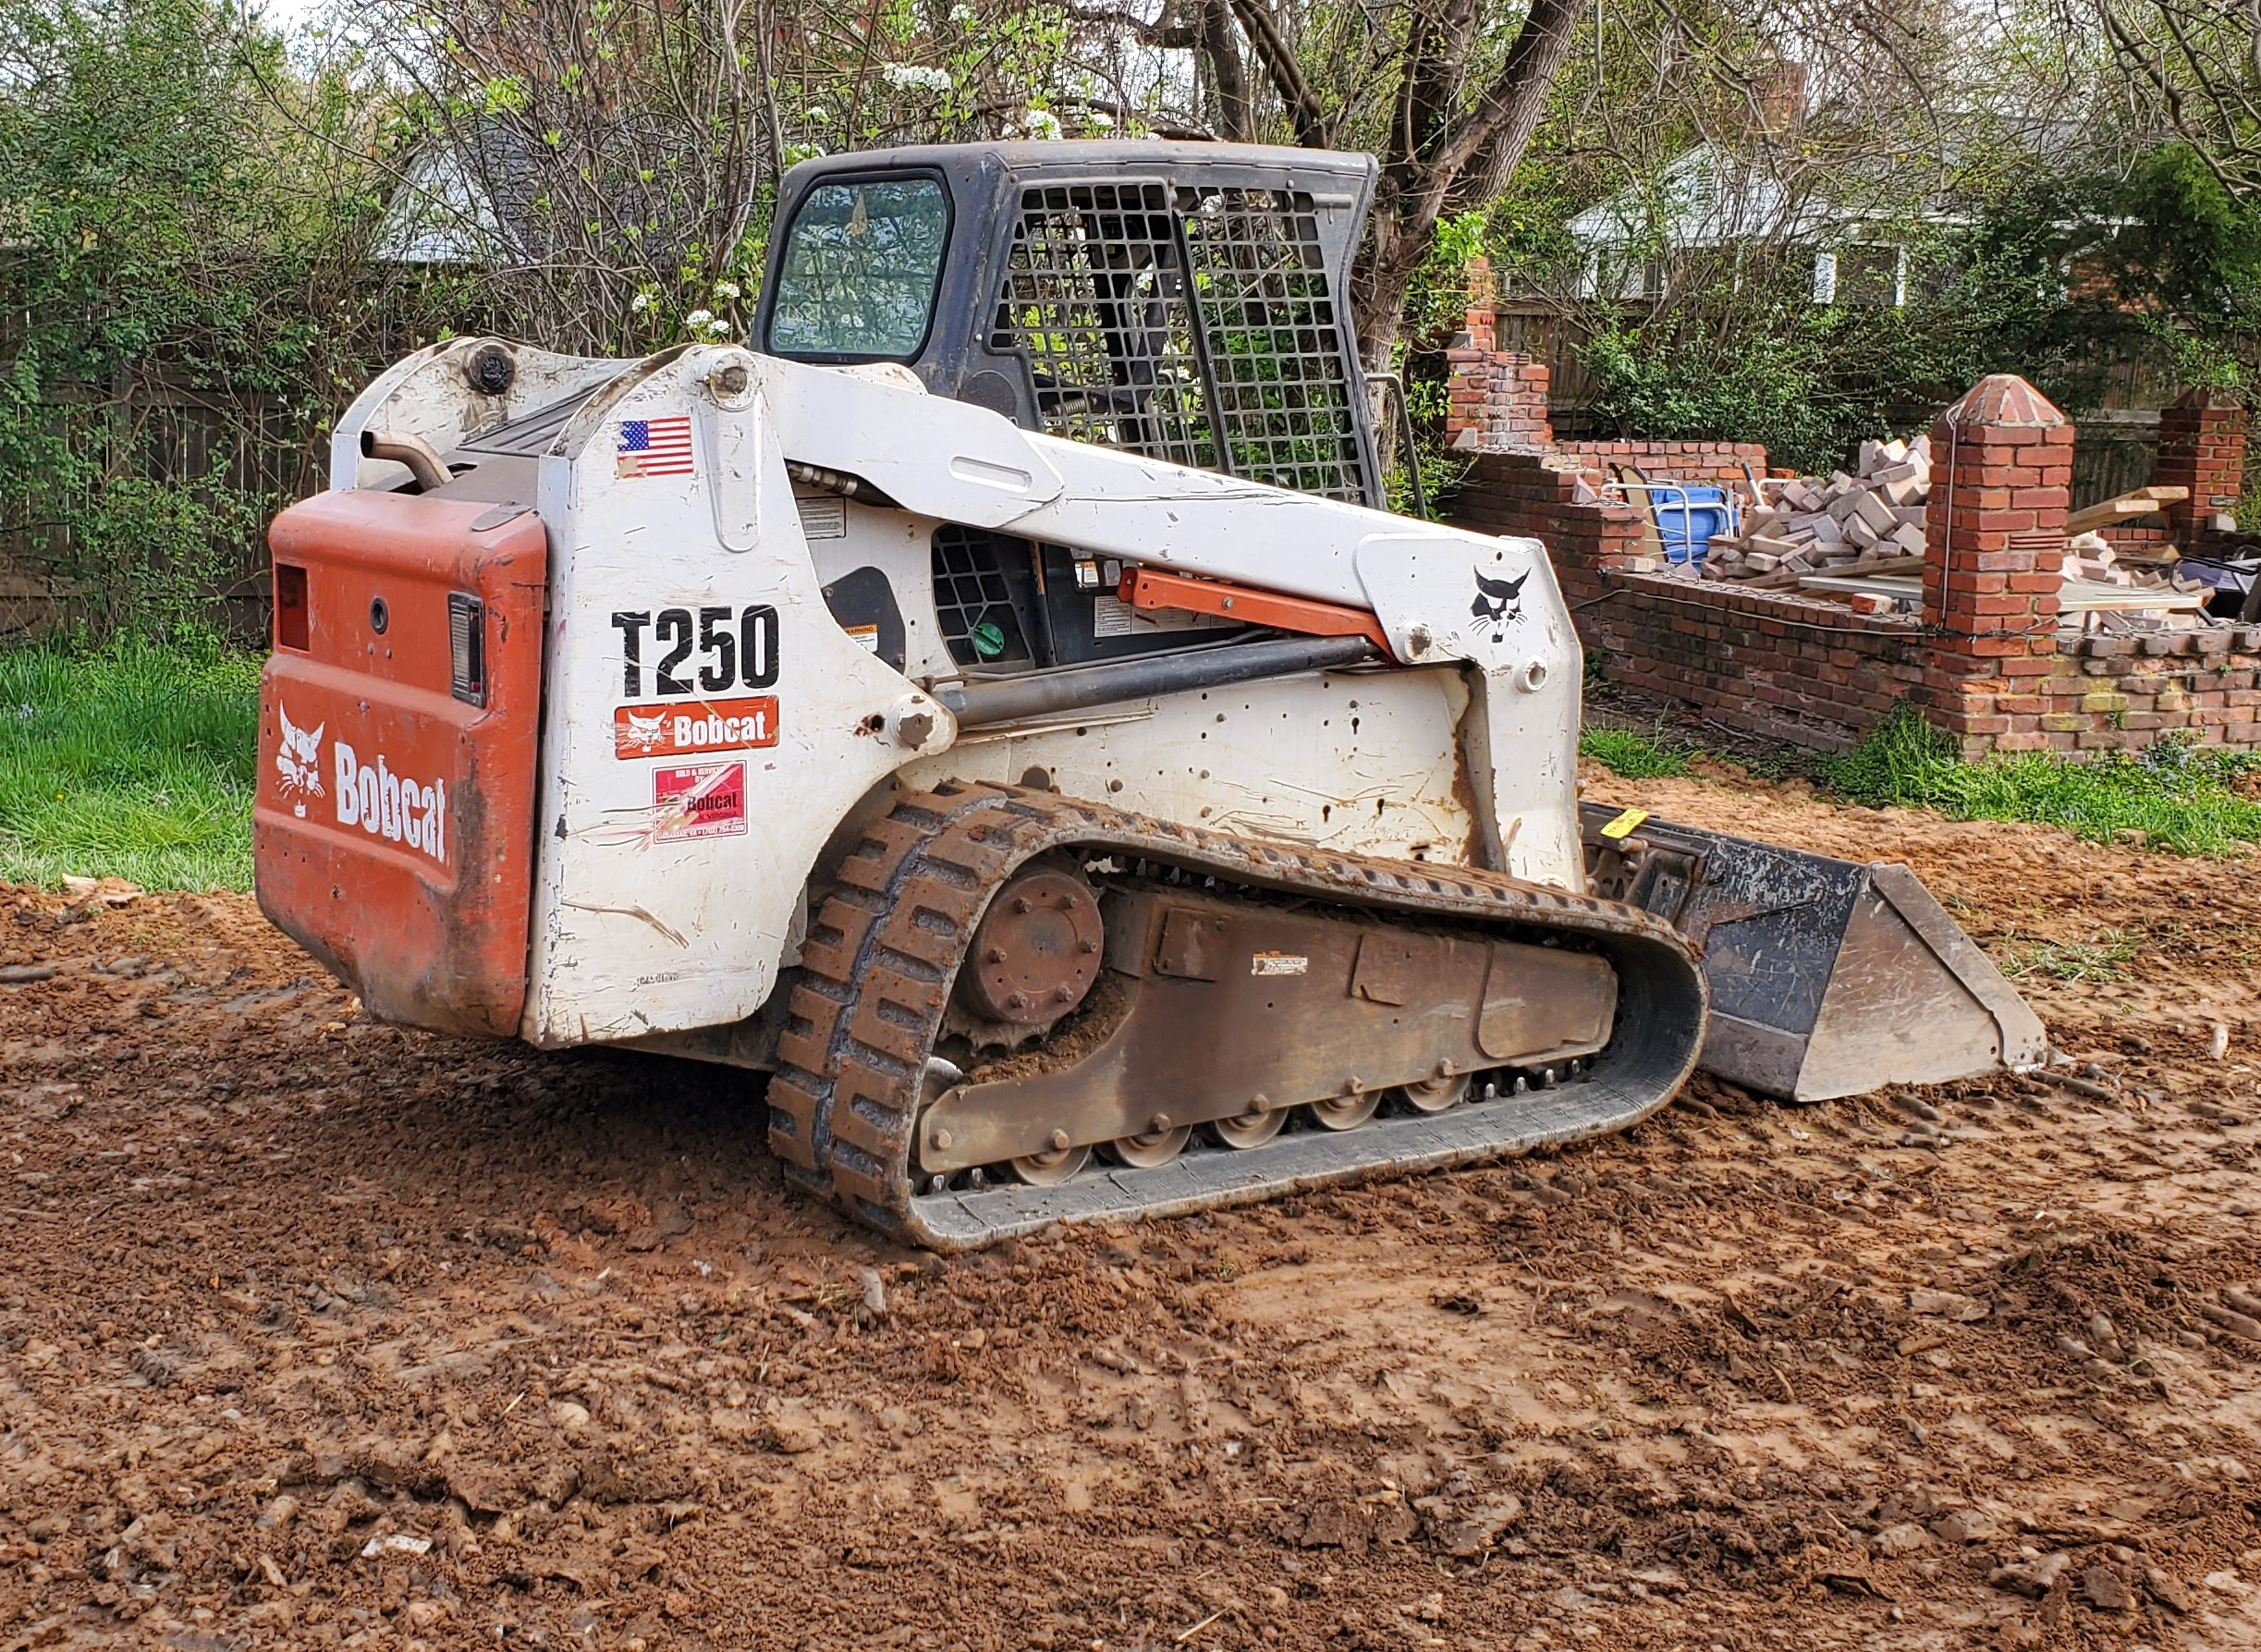 the dirt connections bobcat rental near me can load full size dump trucks